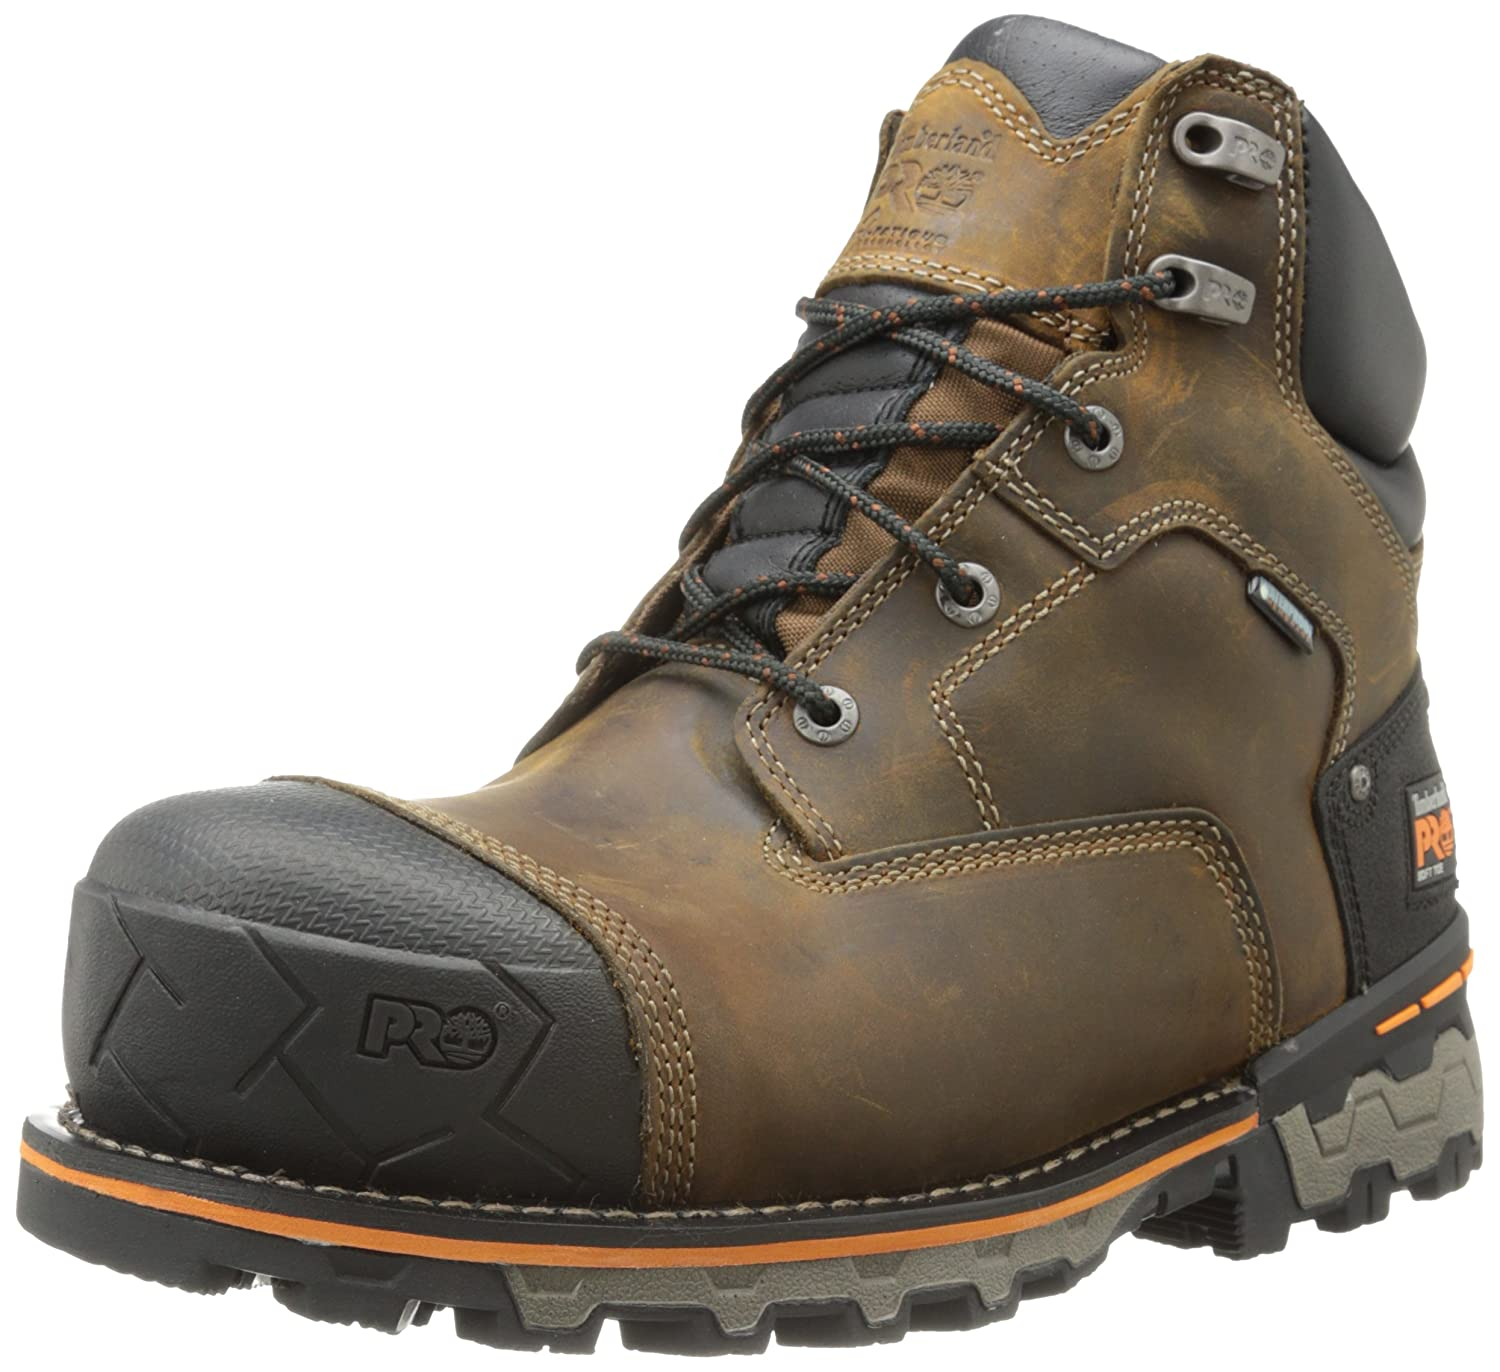 Timberland Pro Boondock 6 Toe Suave fPxWQgKAvs